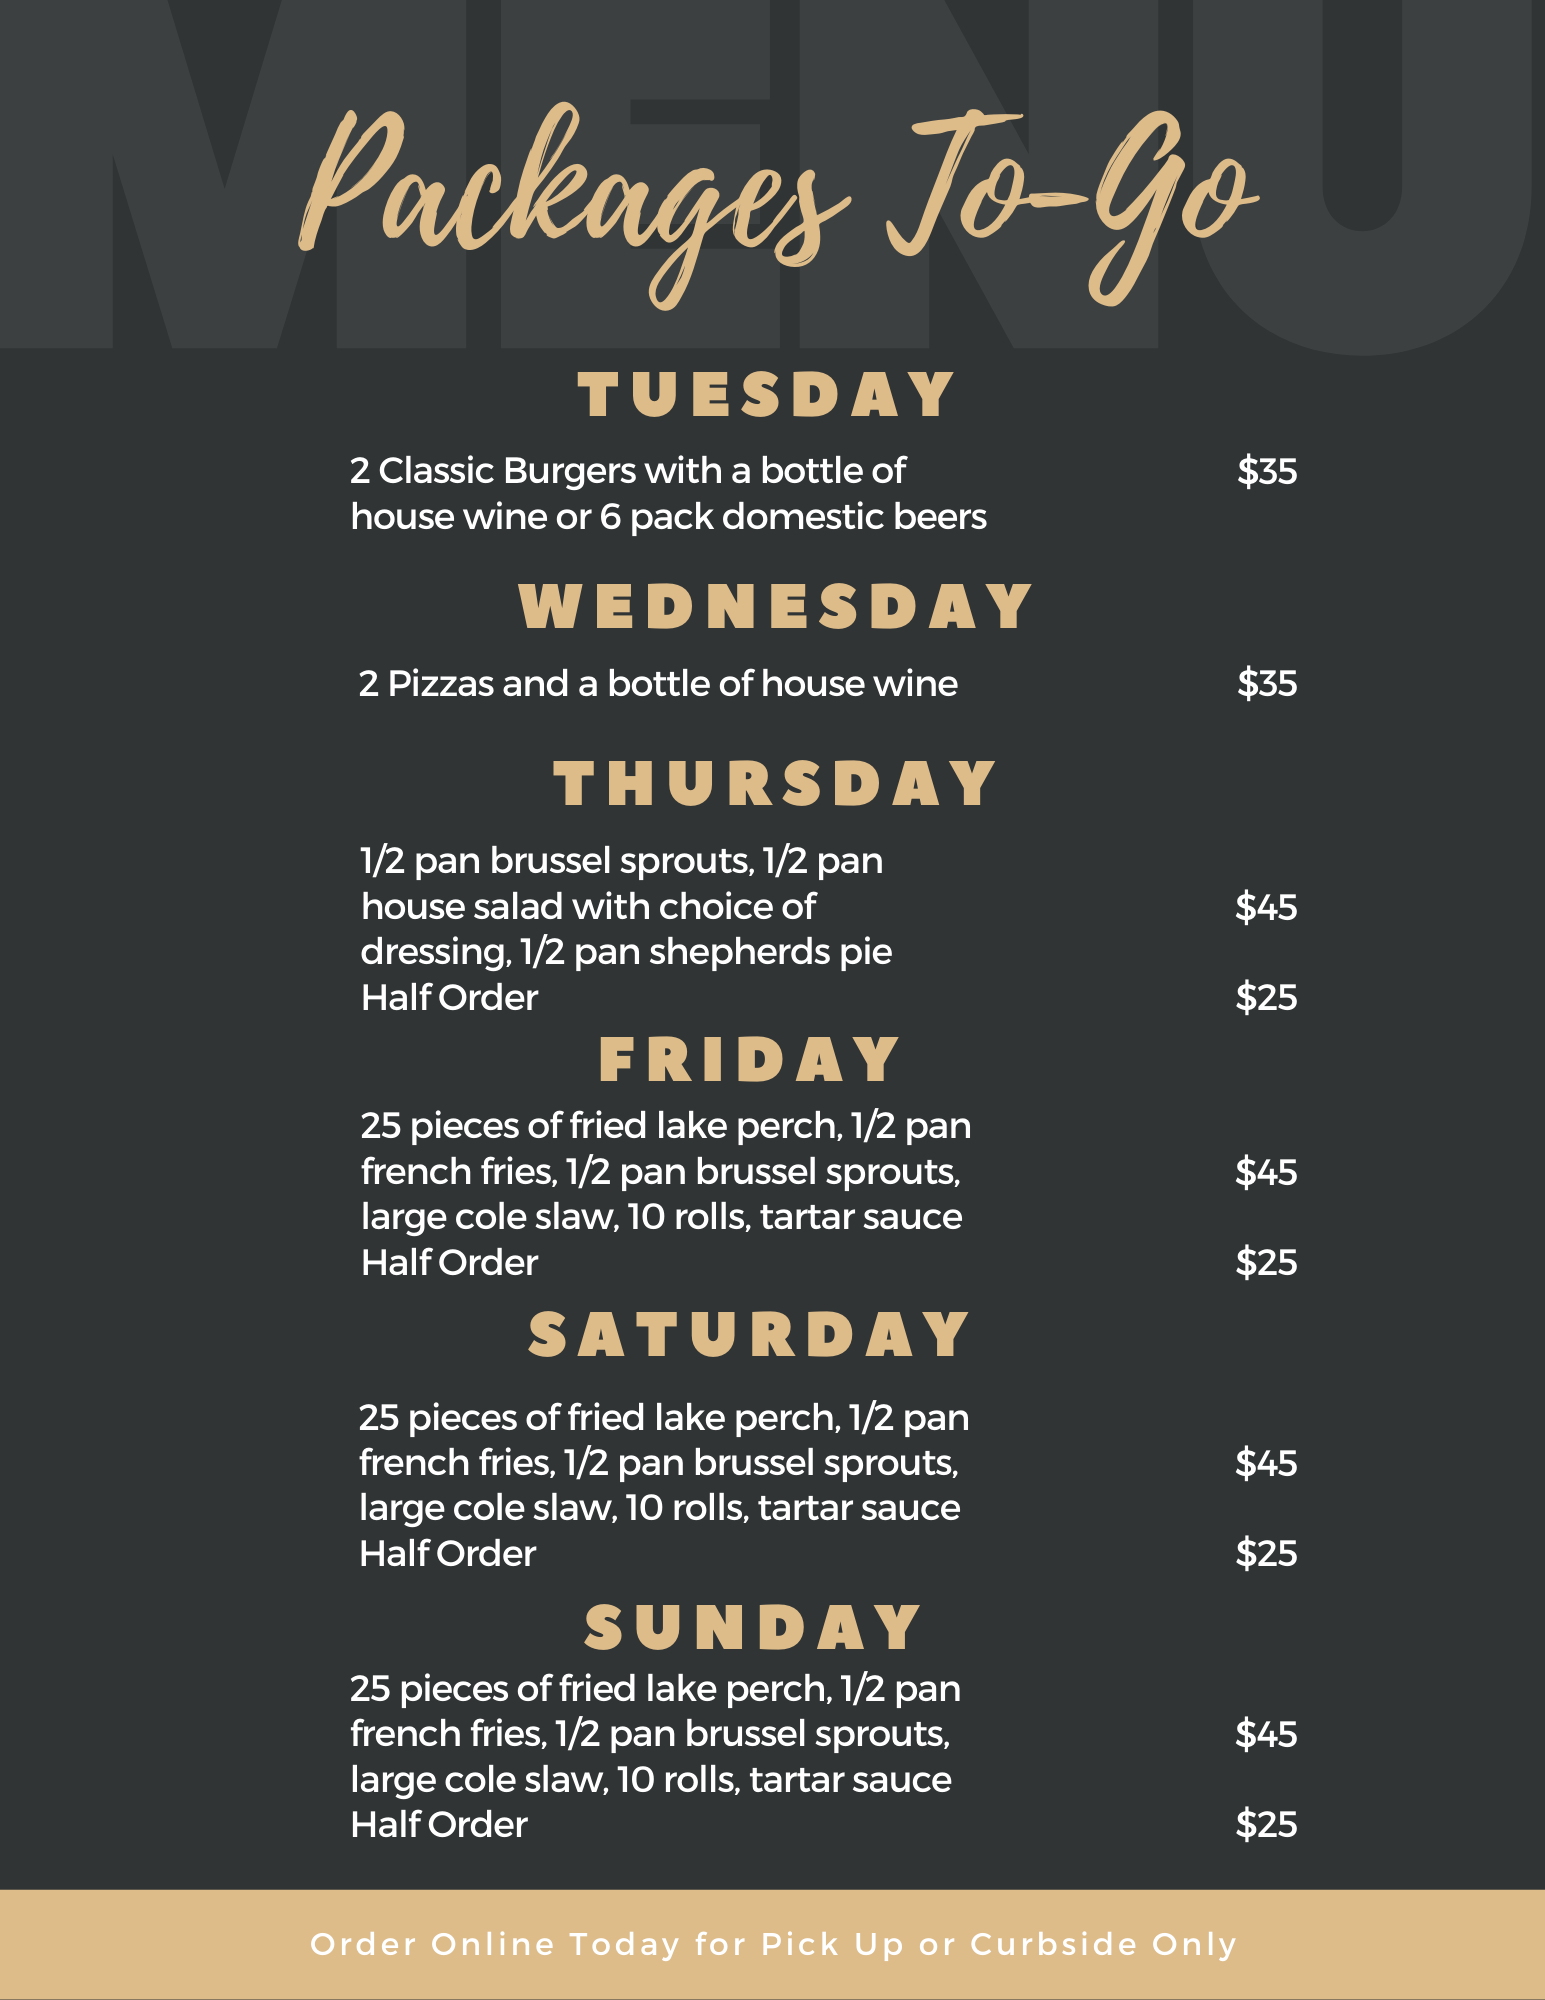 packages to-go tuesday 2 classic burgers with a bottle of house wine or 6 pack domestic beers $35 wednesday 2 pizzas and a bottle of house wine $35 thursday 1/2 pan brussel sprouts, 1/2 pan house salad with choice of dressing, 1/2 pan shepards pie $45 half order $25 friday 25 pieces of fried lake perch, 1/2 pan french fries, 1/2 pan brussel sprouts, large cole slaw, 10 rolls, tartar sauce $45 half order $25 saturday 25 pieces of fried lake perch, 1/2 pan french fries, 1/2 pan brussel sprouts, large cole slaw, 10 rolls, tartar sauce $45 half order $25 sunday 25 pieces of fried lake perch, 1/2 pan french fries, 1/2 pan brussel sprouts, large cole slaw, 10 rolls, tartar sauce $45 half order $25 order online today for pick up or curbside only